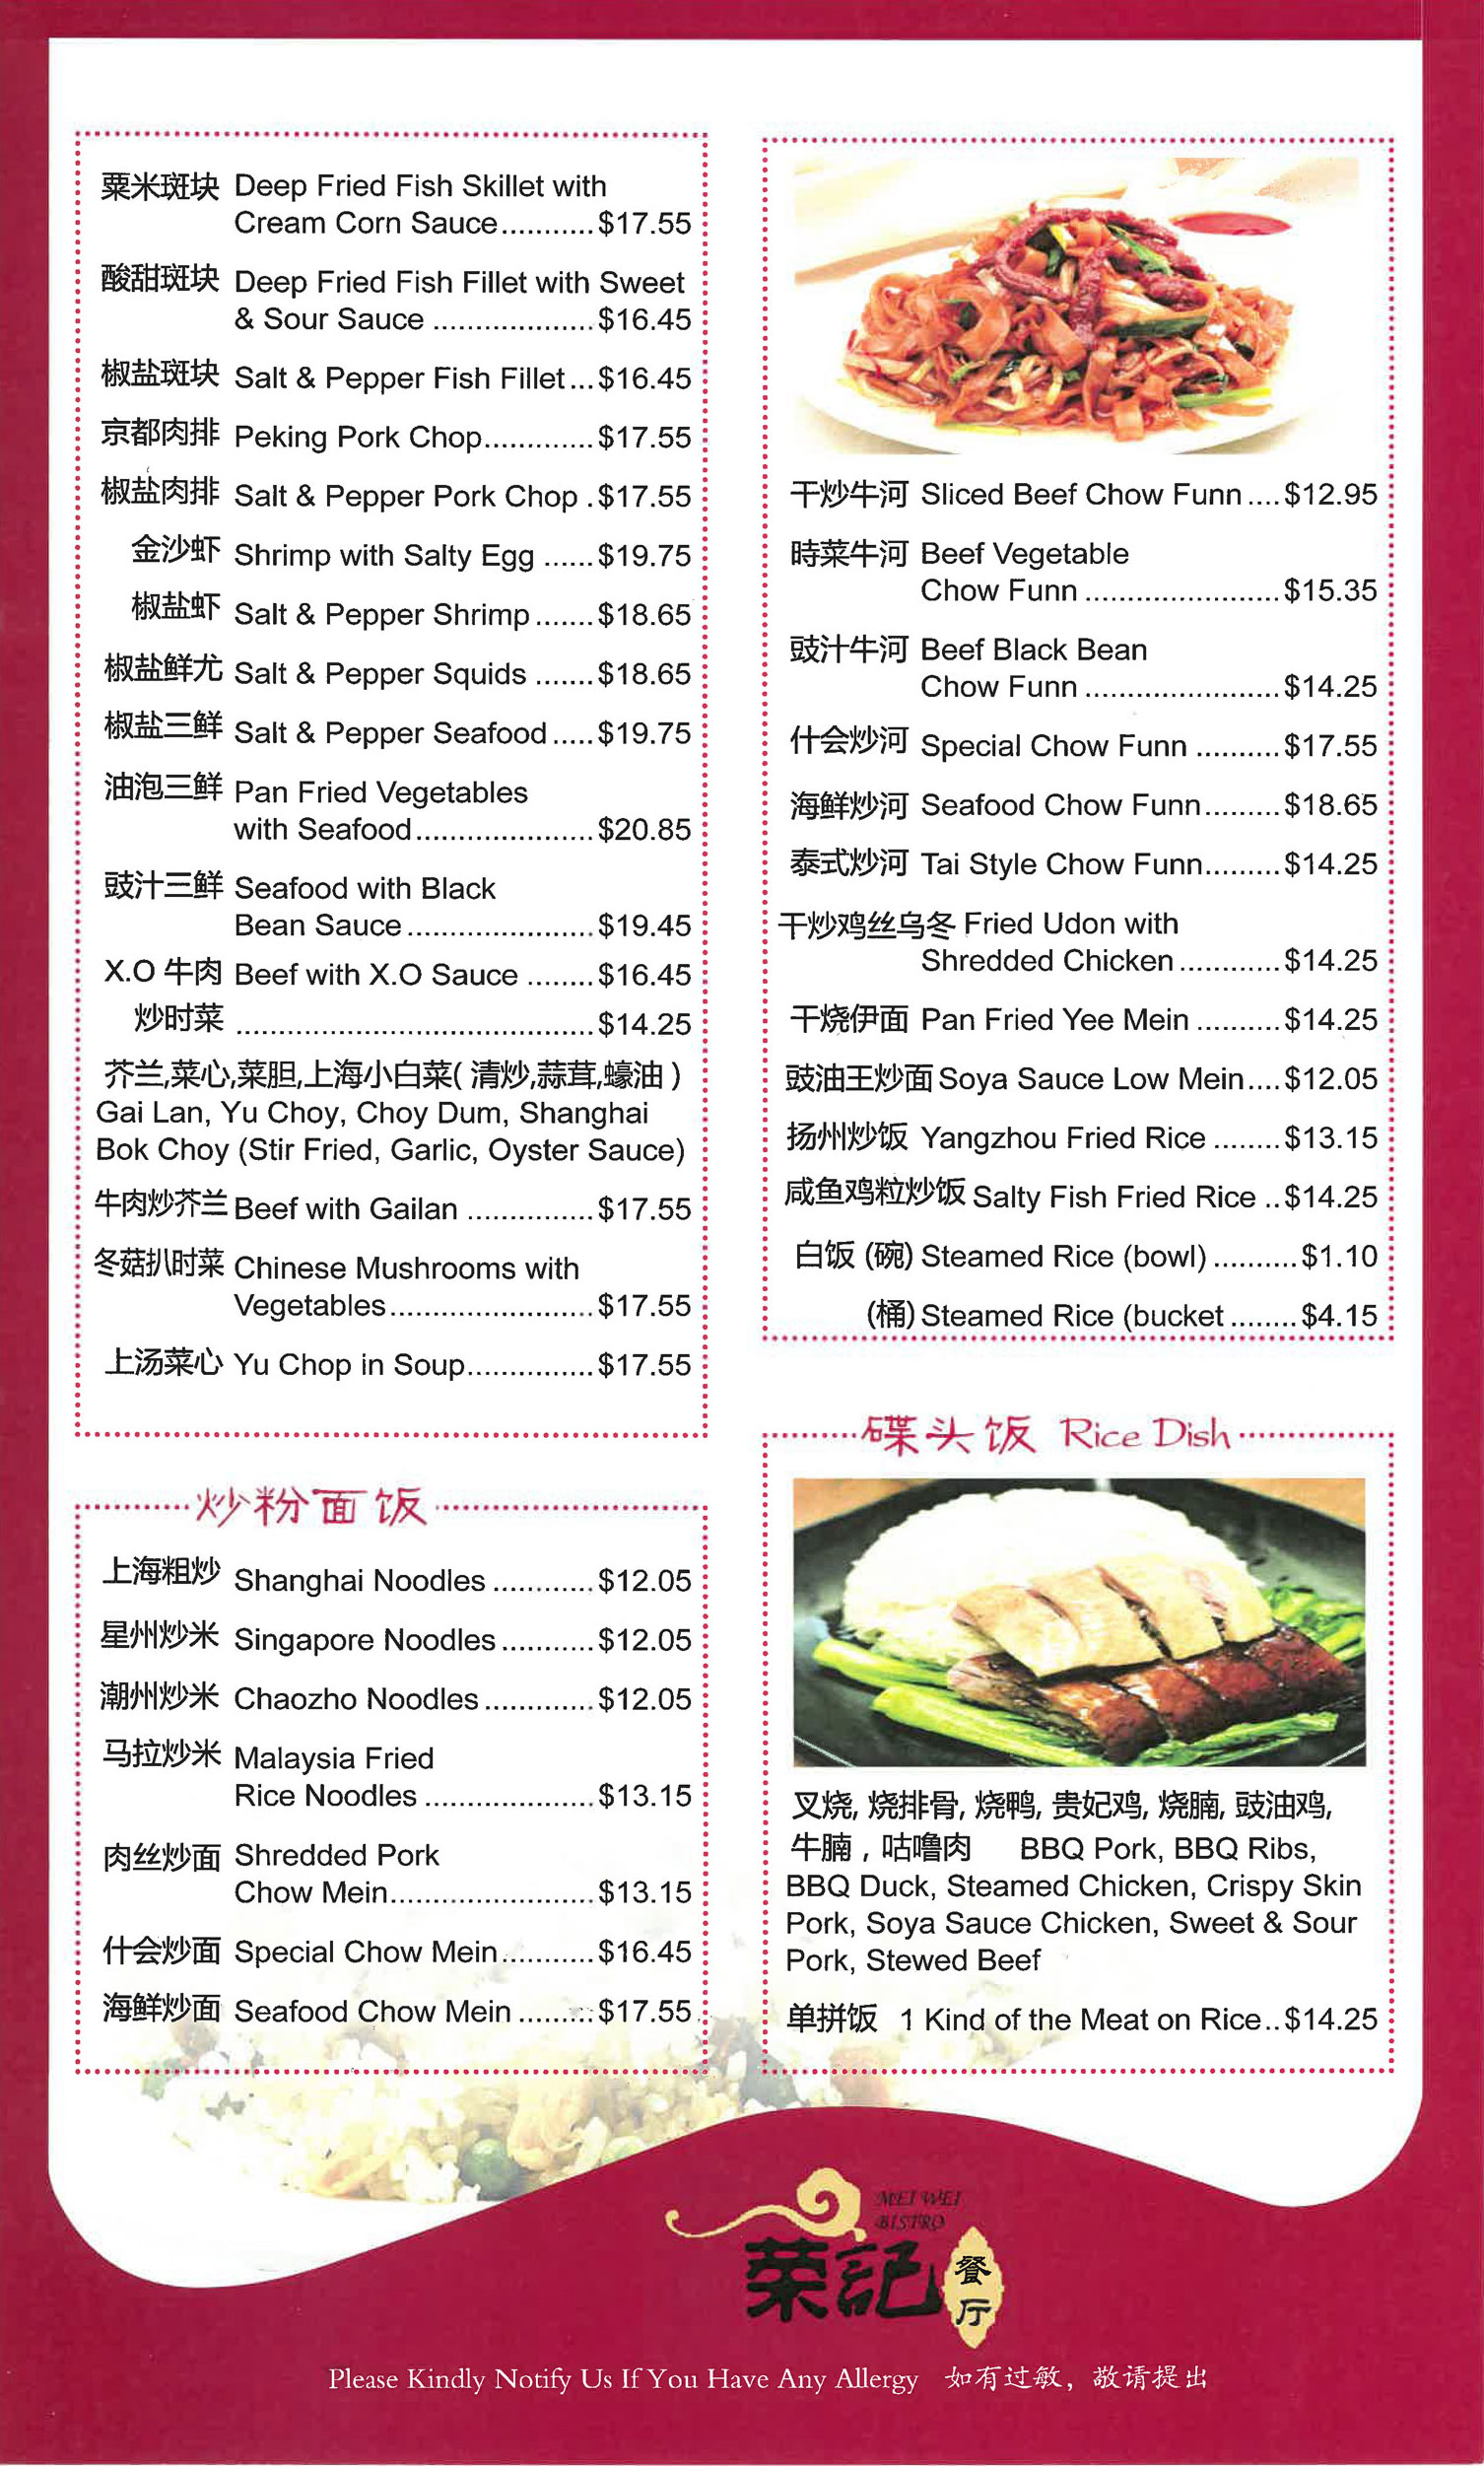 Chinese cuisine menu